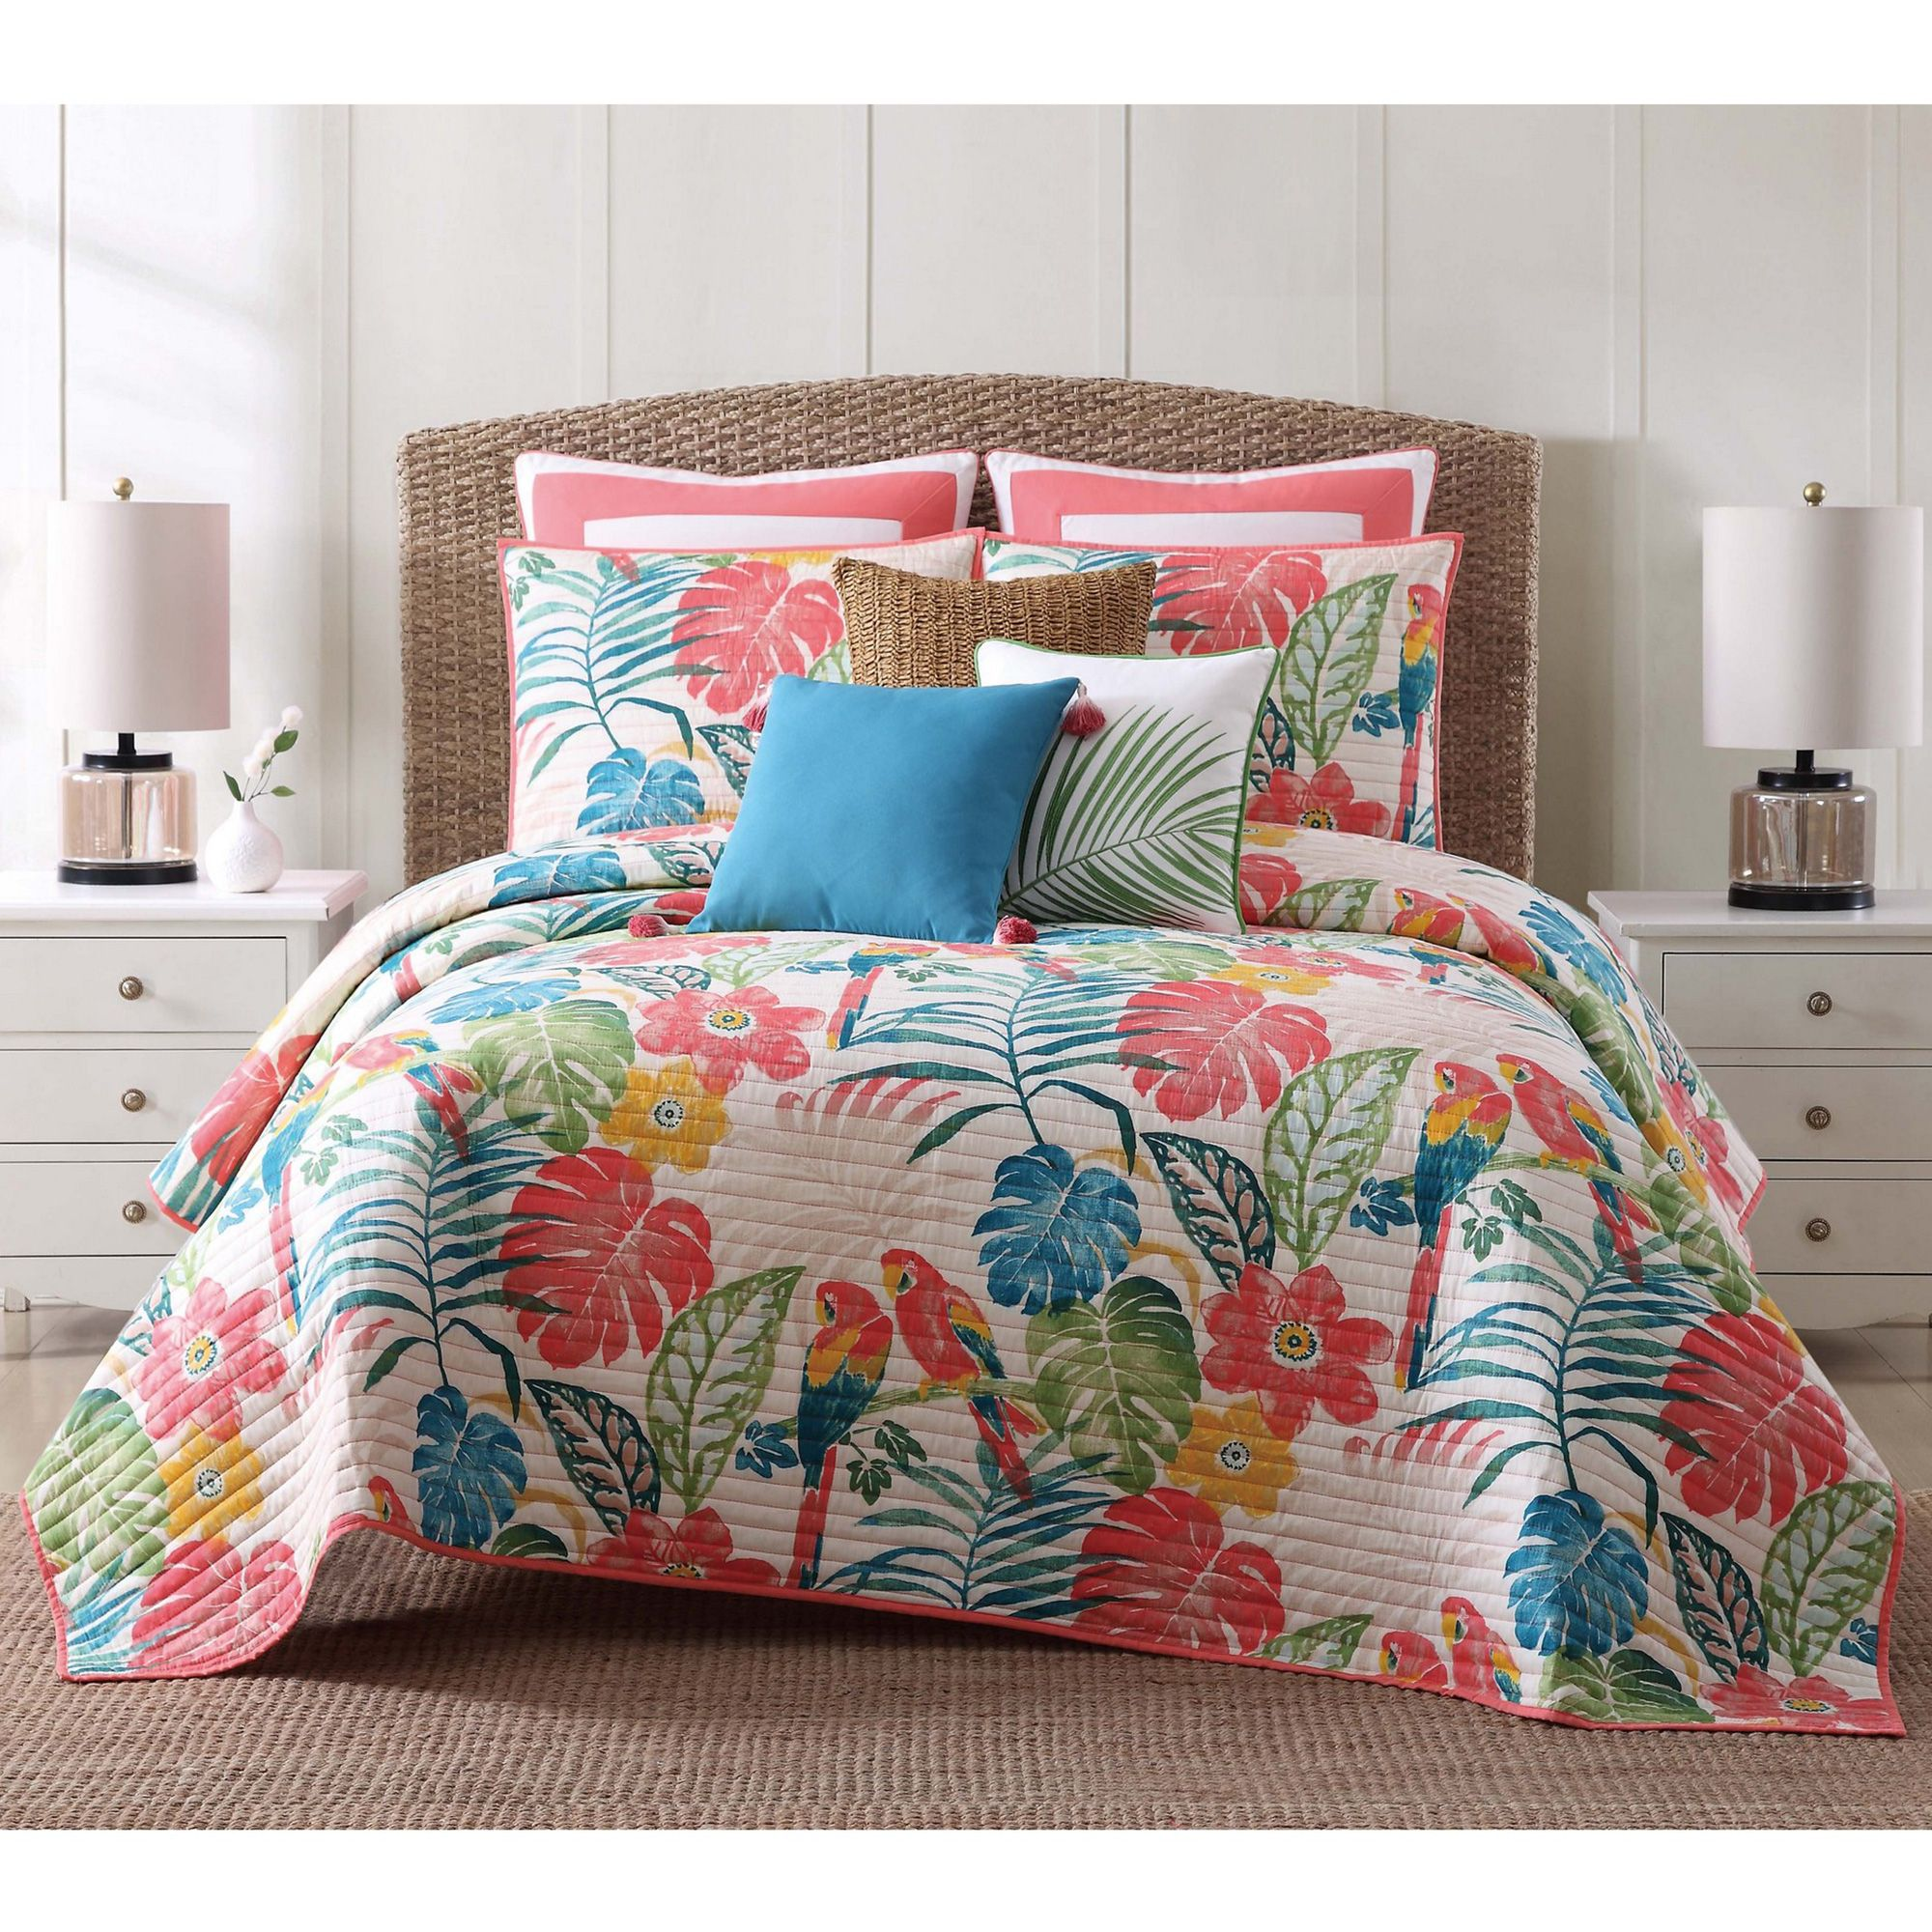 This Quilt Set From Oceanfront Resort Has Bright Palm Prints Dominated By A Coral Color With Printed Par Comforter Sets King Comforter Sets Luxury Bedding Sets